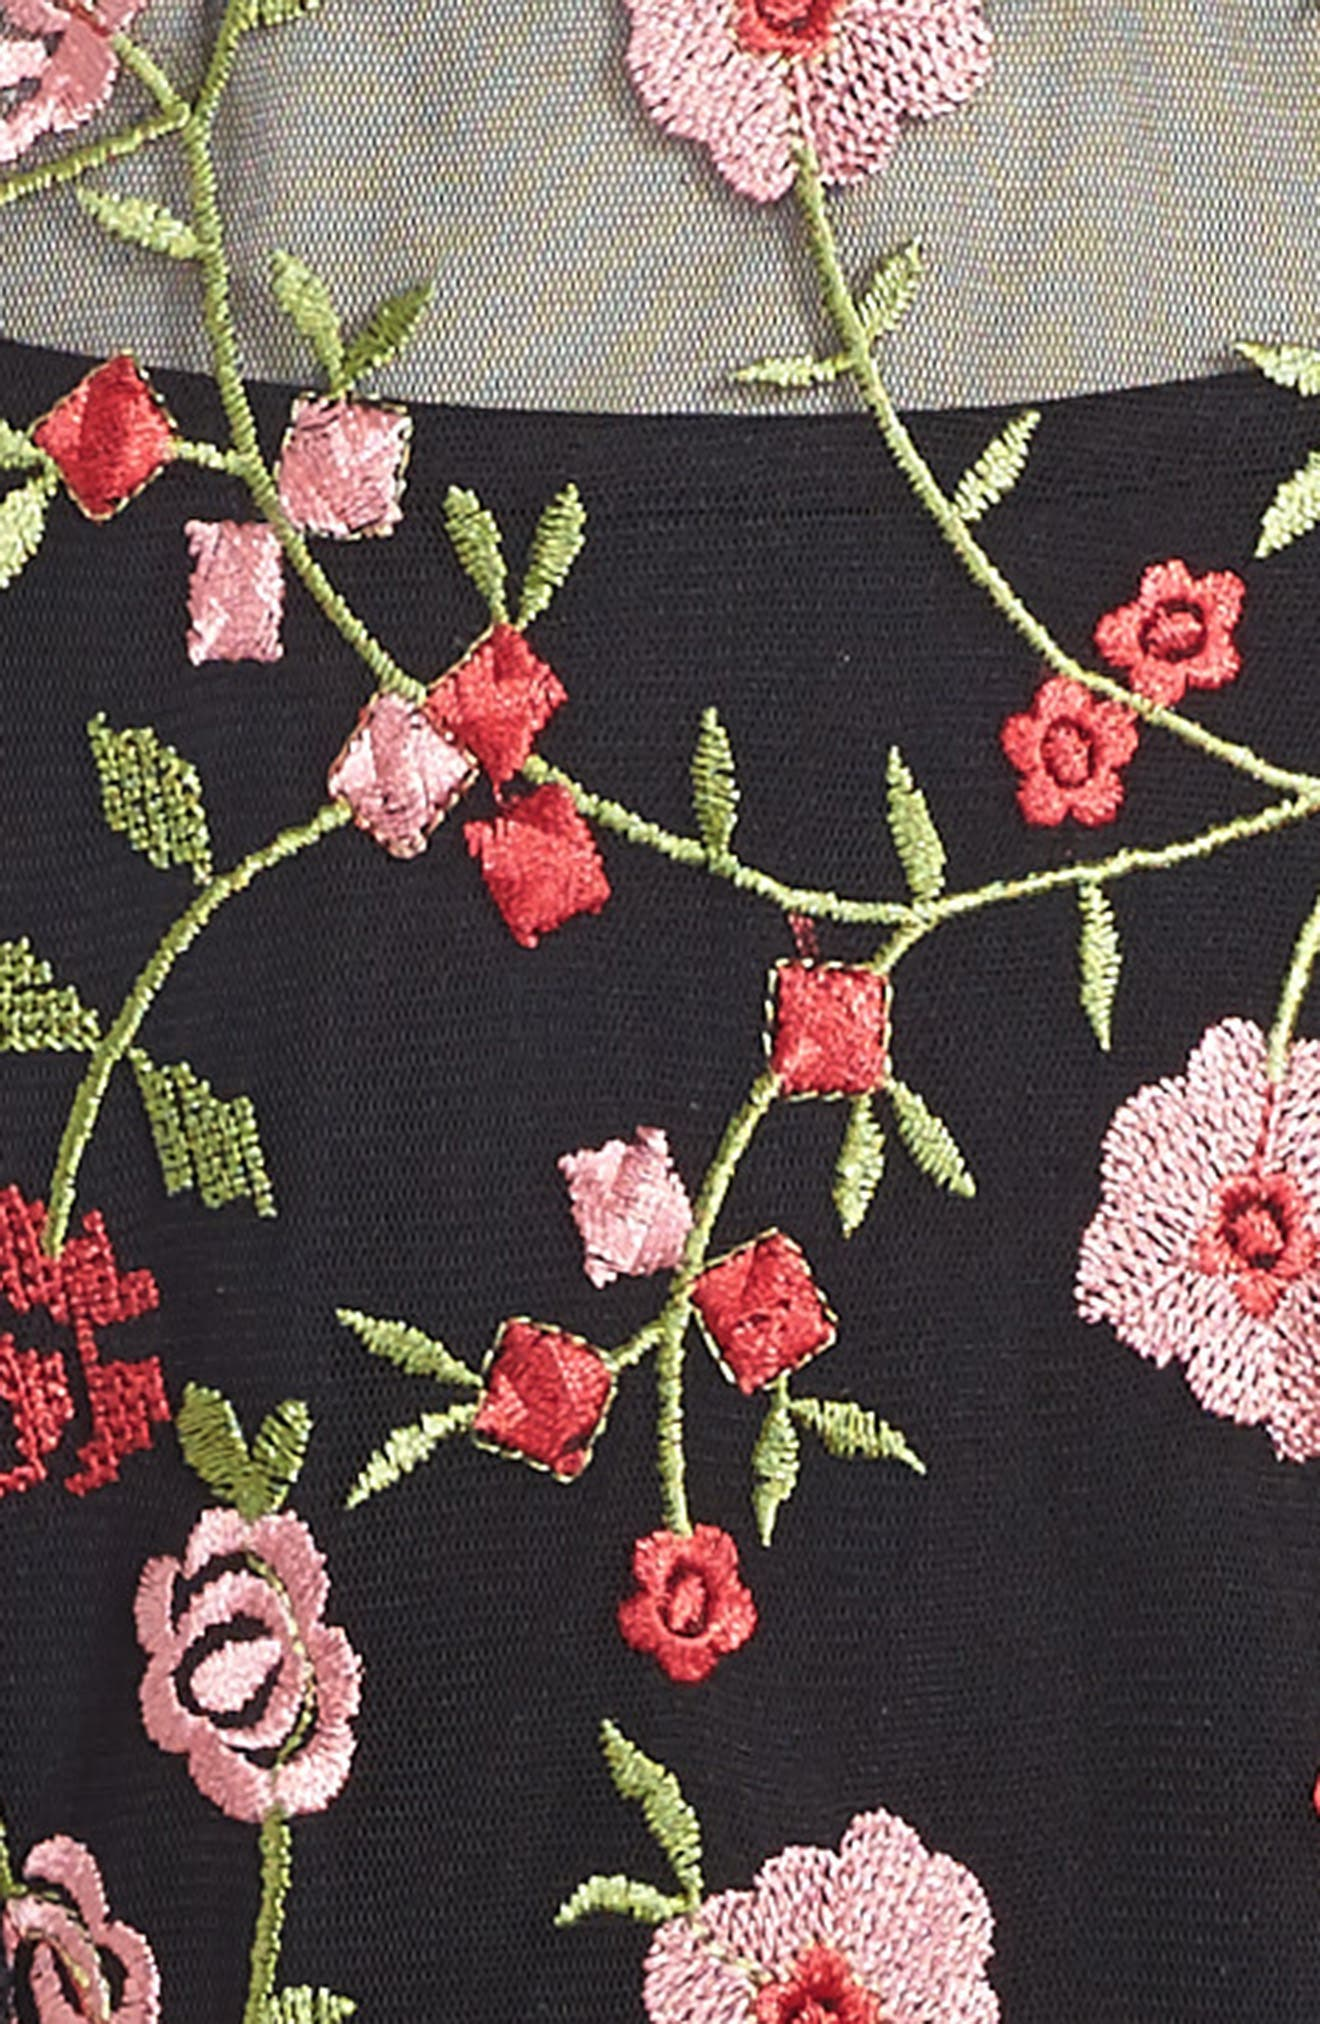 Floral Embroidered Shift Dress,                             Alternate thumbnail 3, color,                             006